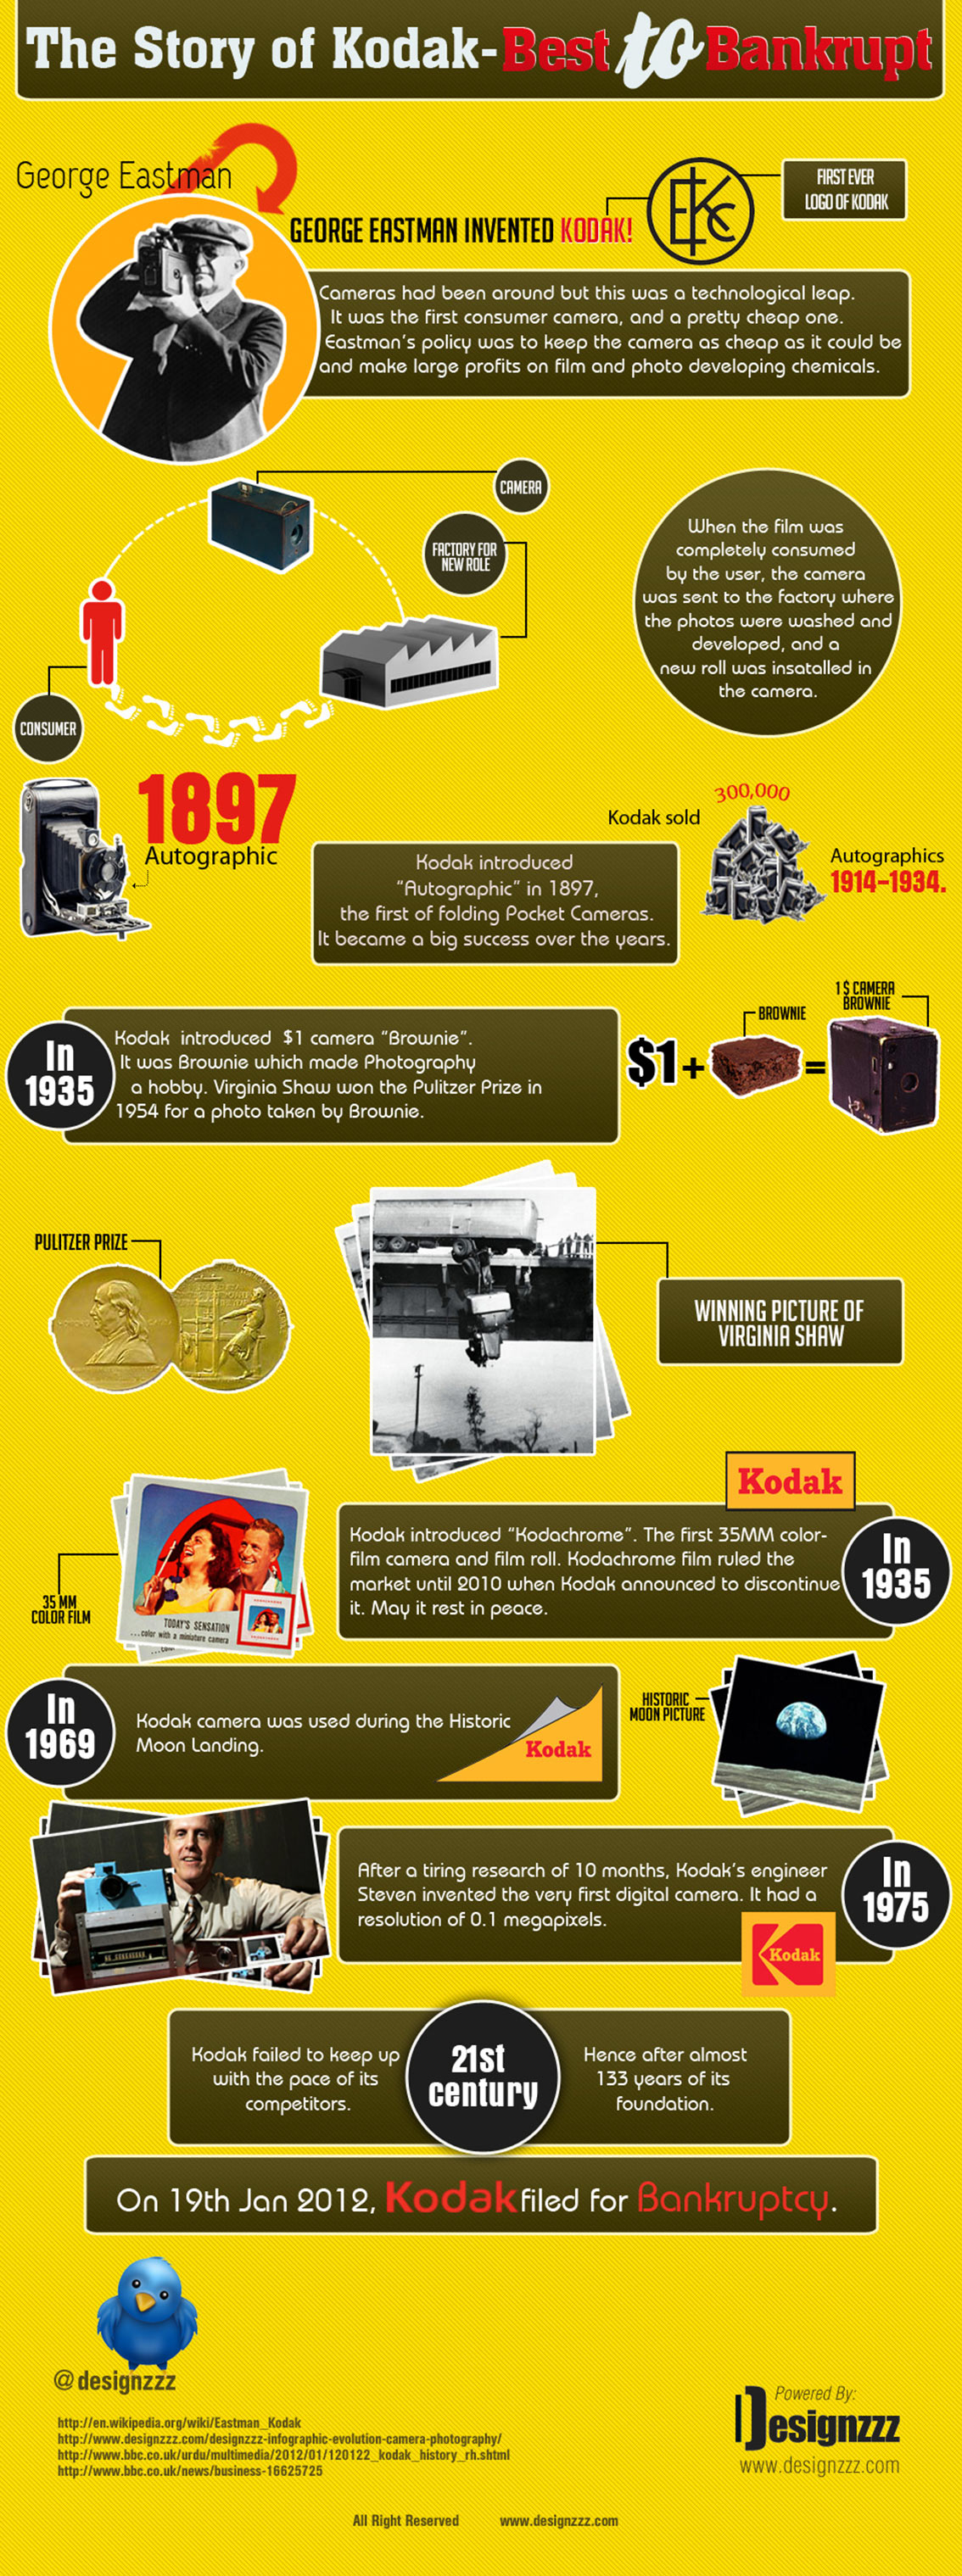 Story of Kodak – From Best to Bankrupt Infographic